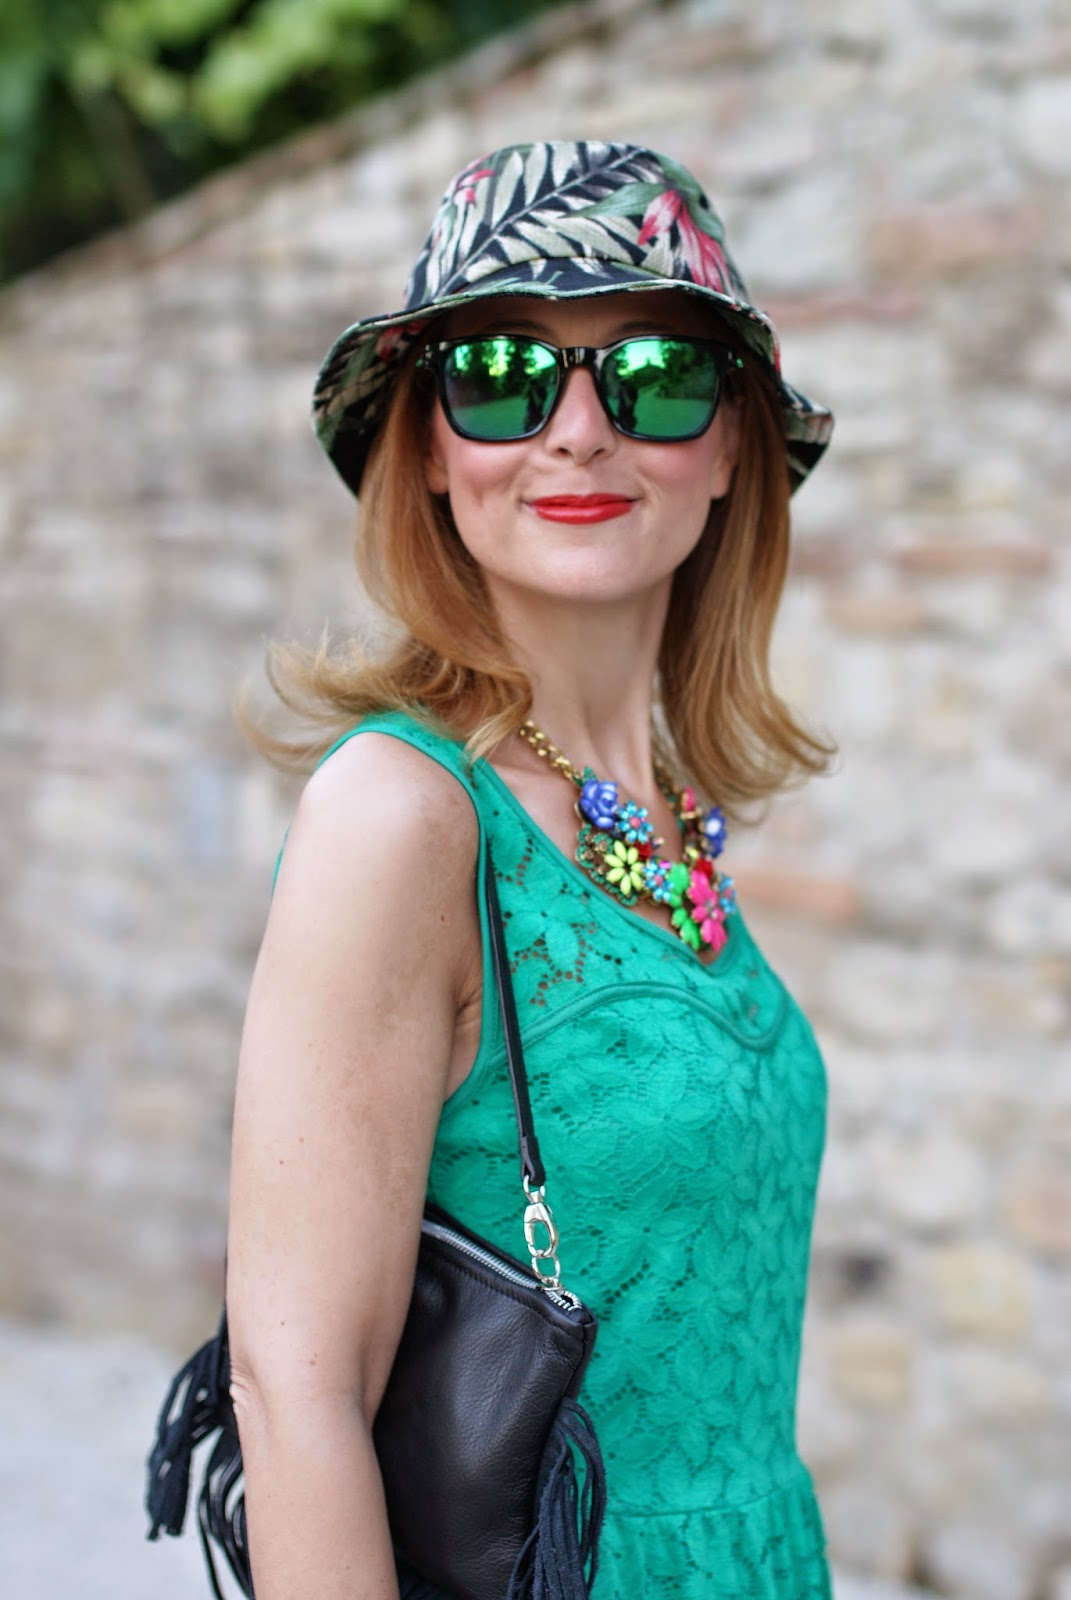 Morgan de toi lace dress, headict hat, fringed bag, bob hat, oakley green sunglasses, Fashion and Cookies, fashion blogger